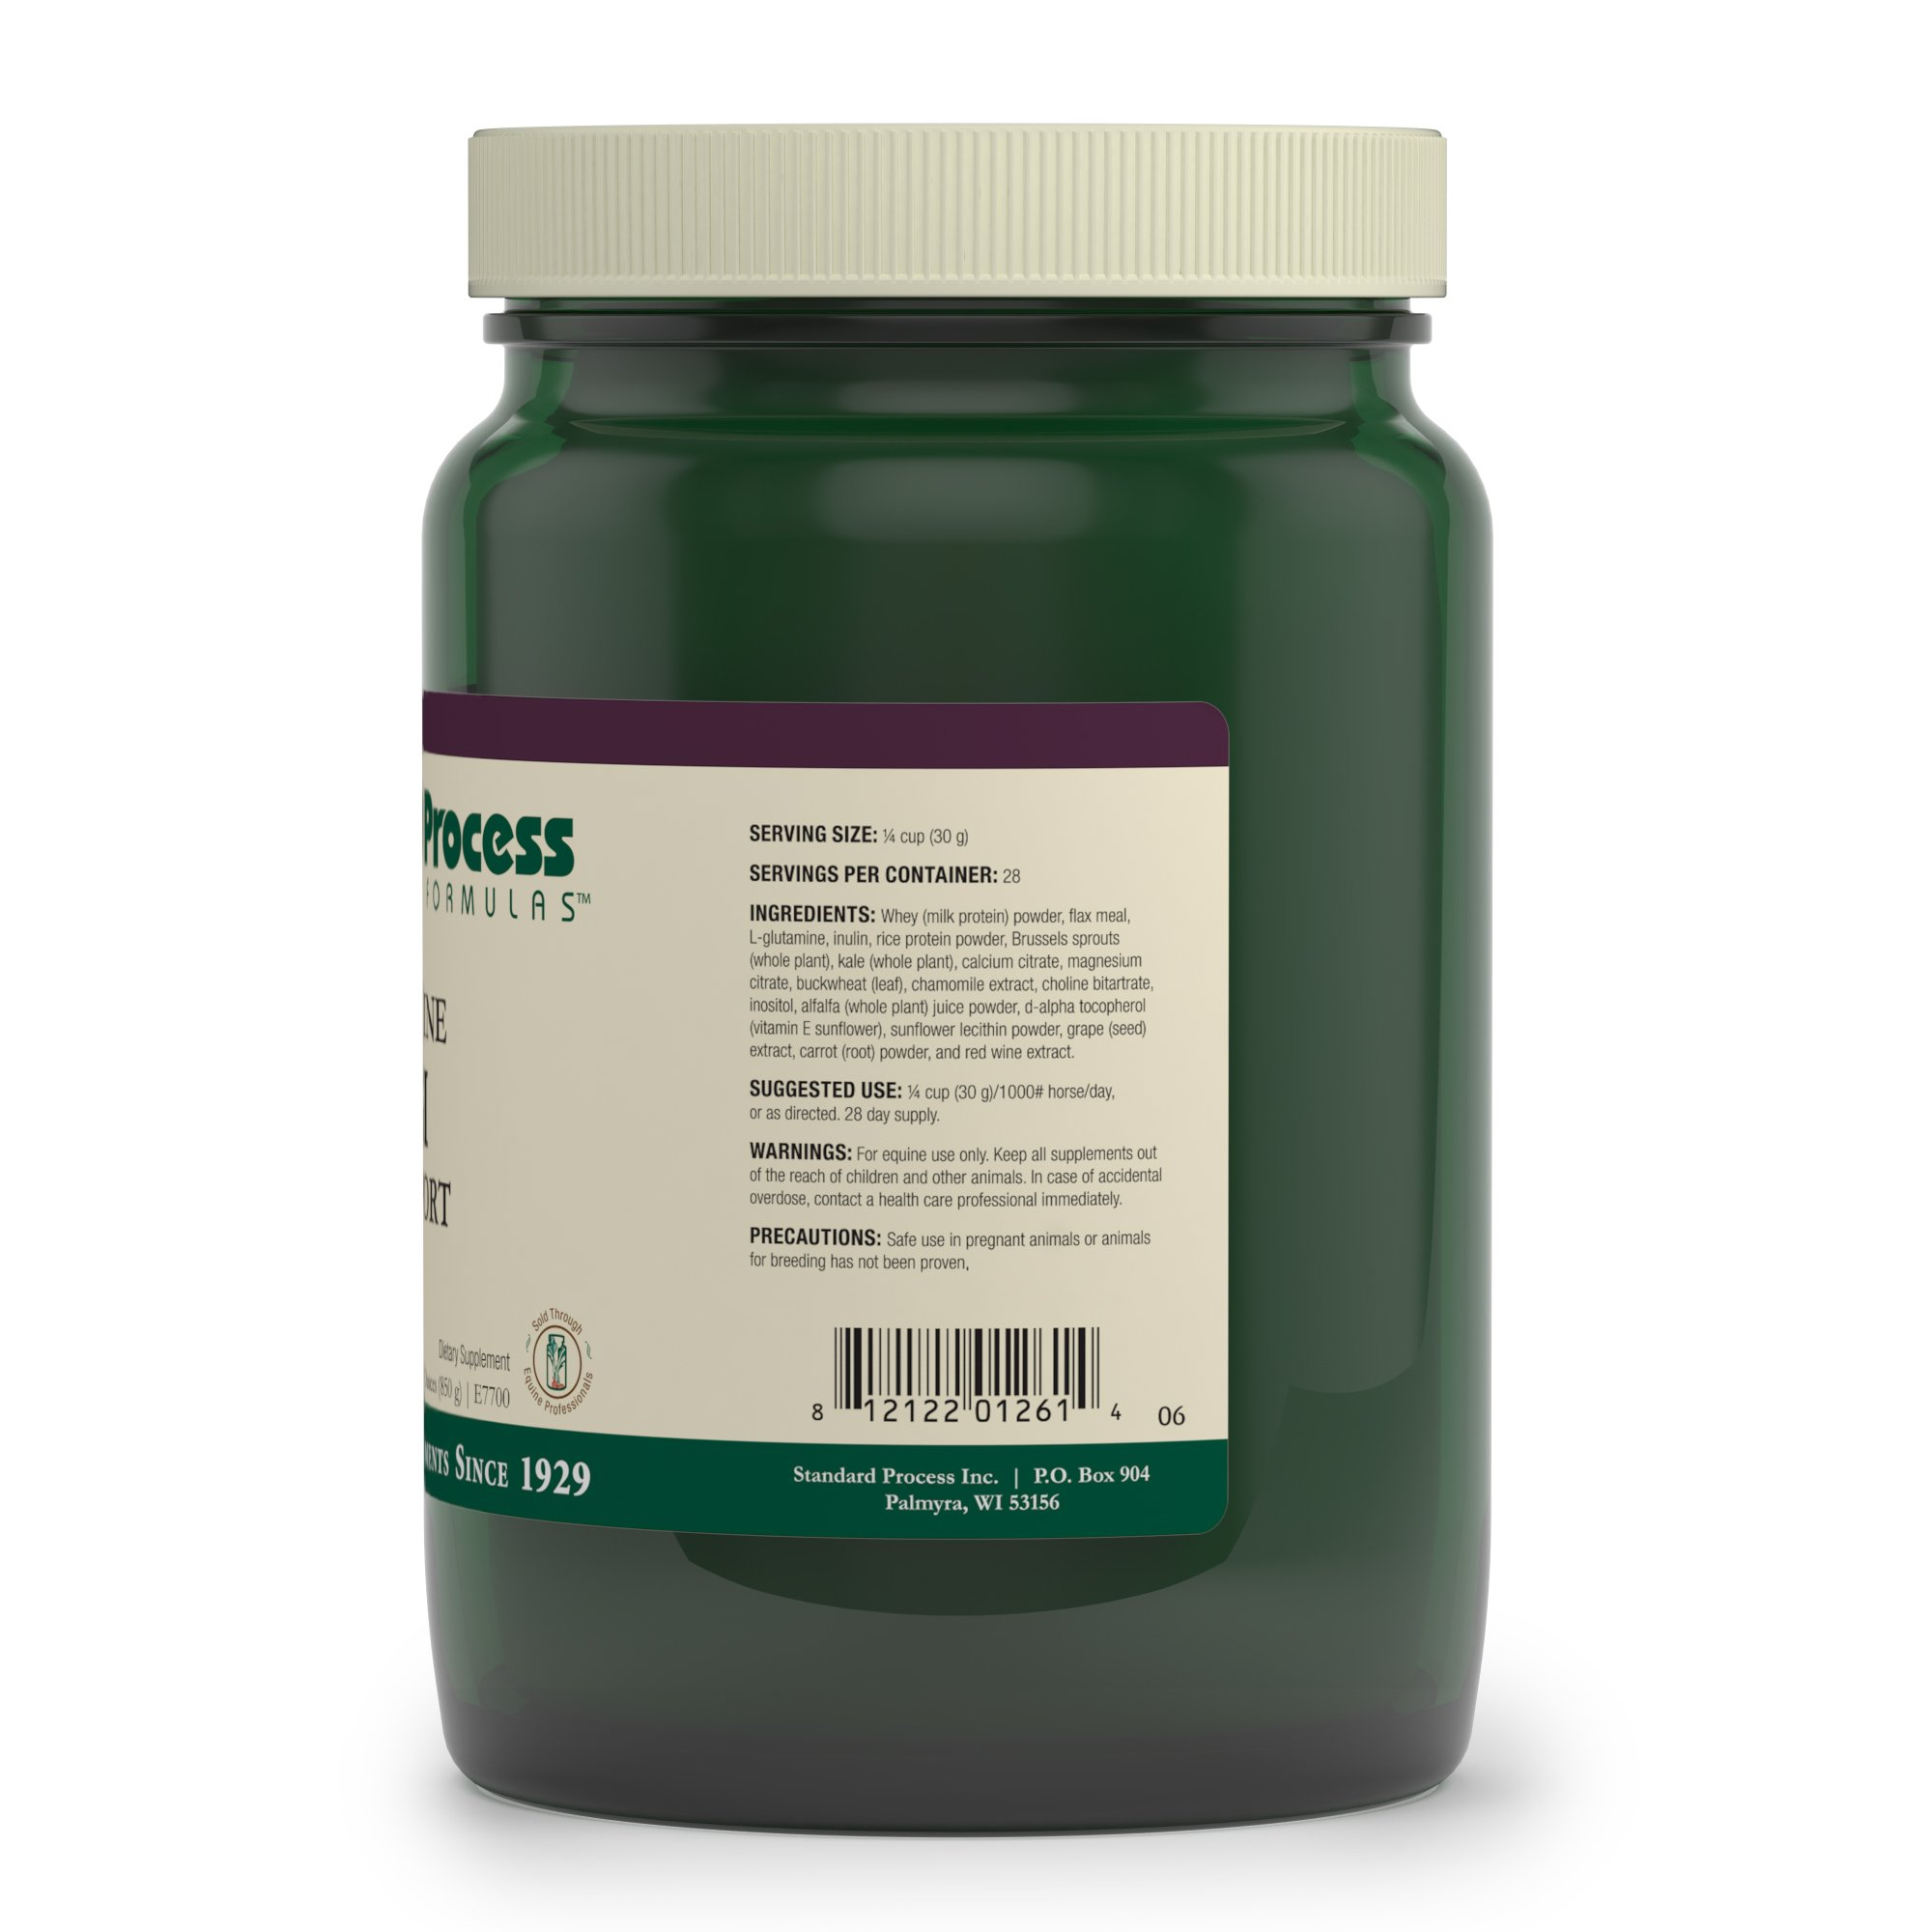 Standard Process - Equine GI Support - 30 oz. by Standard Process (Image #2)